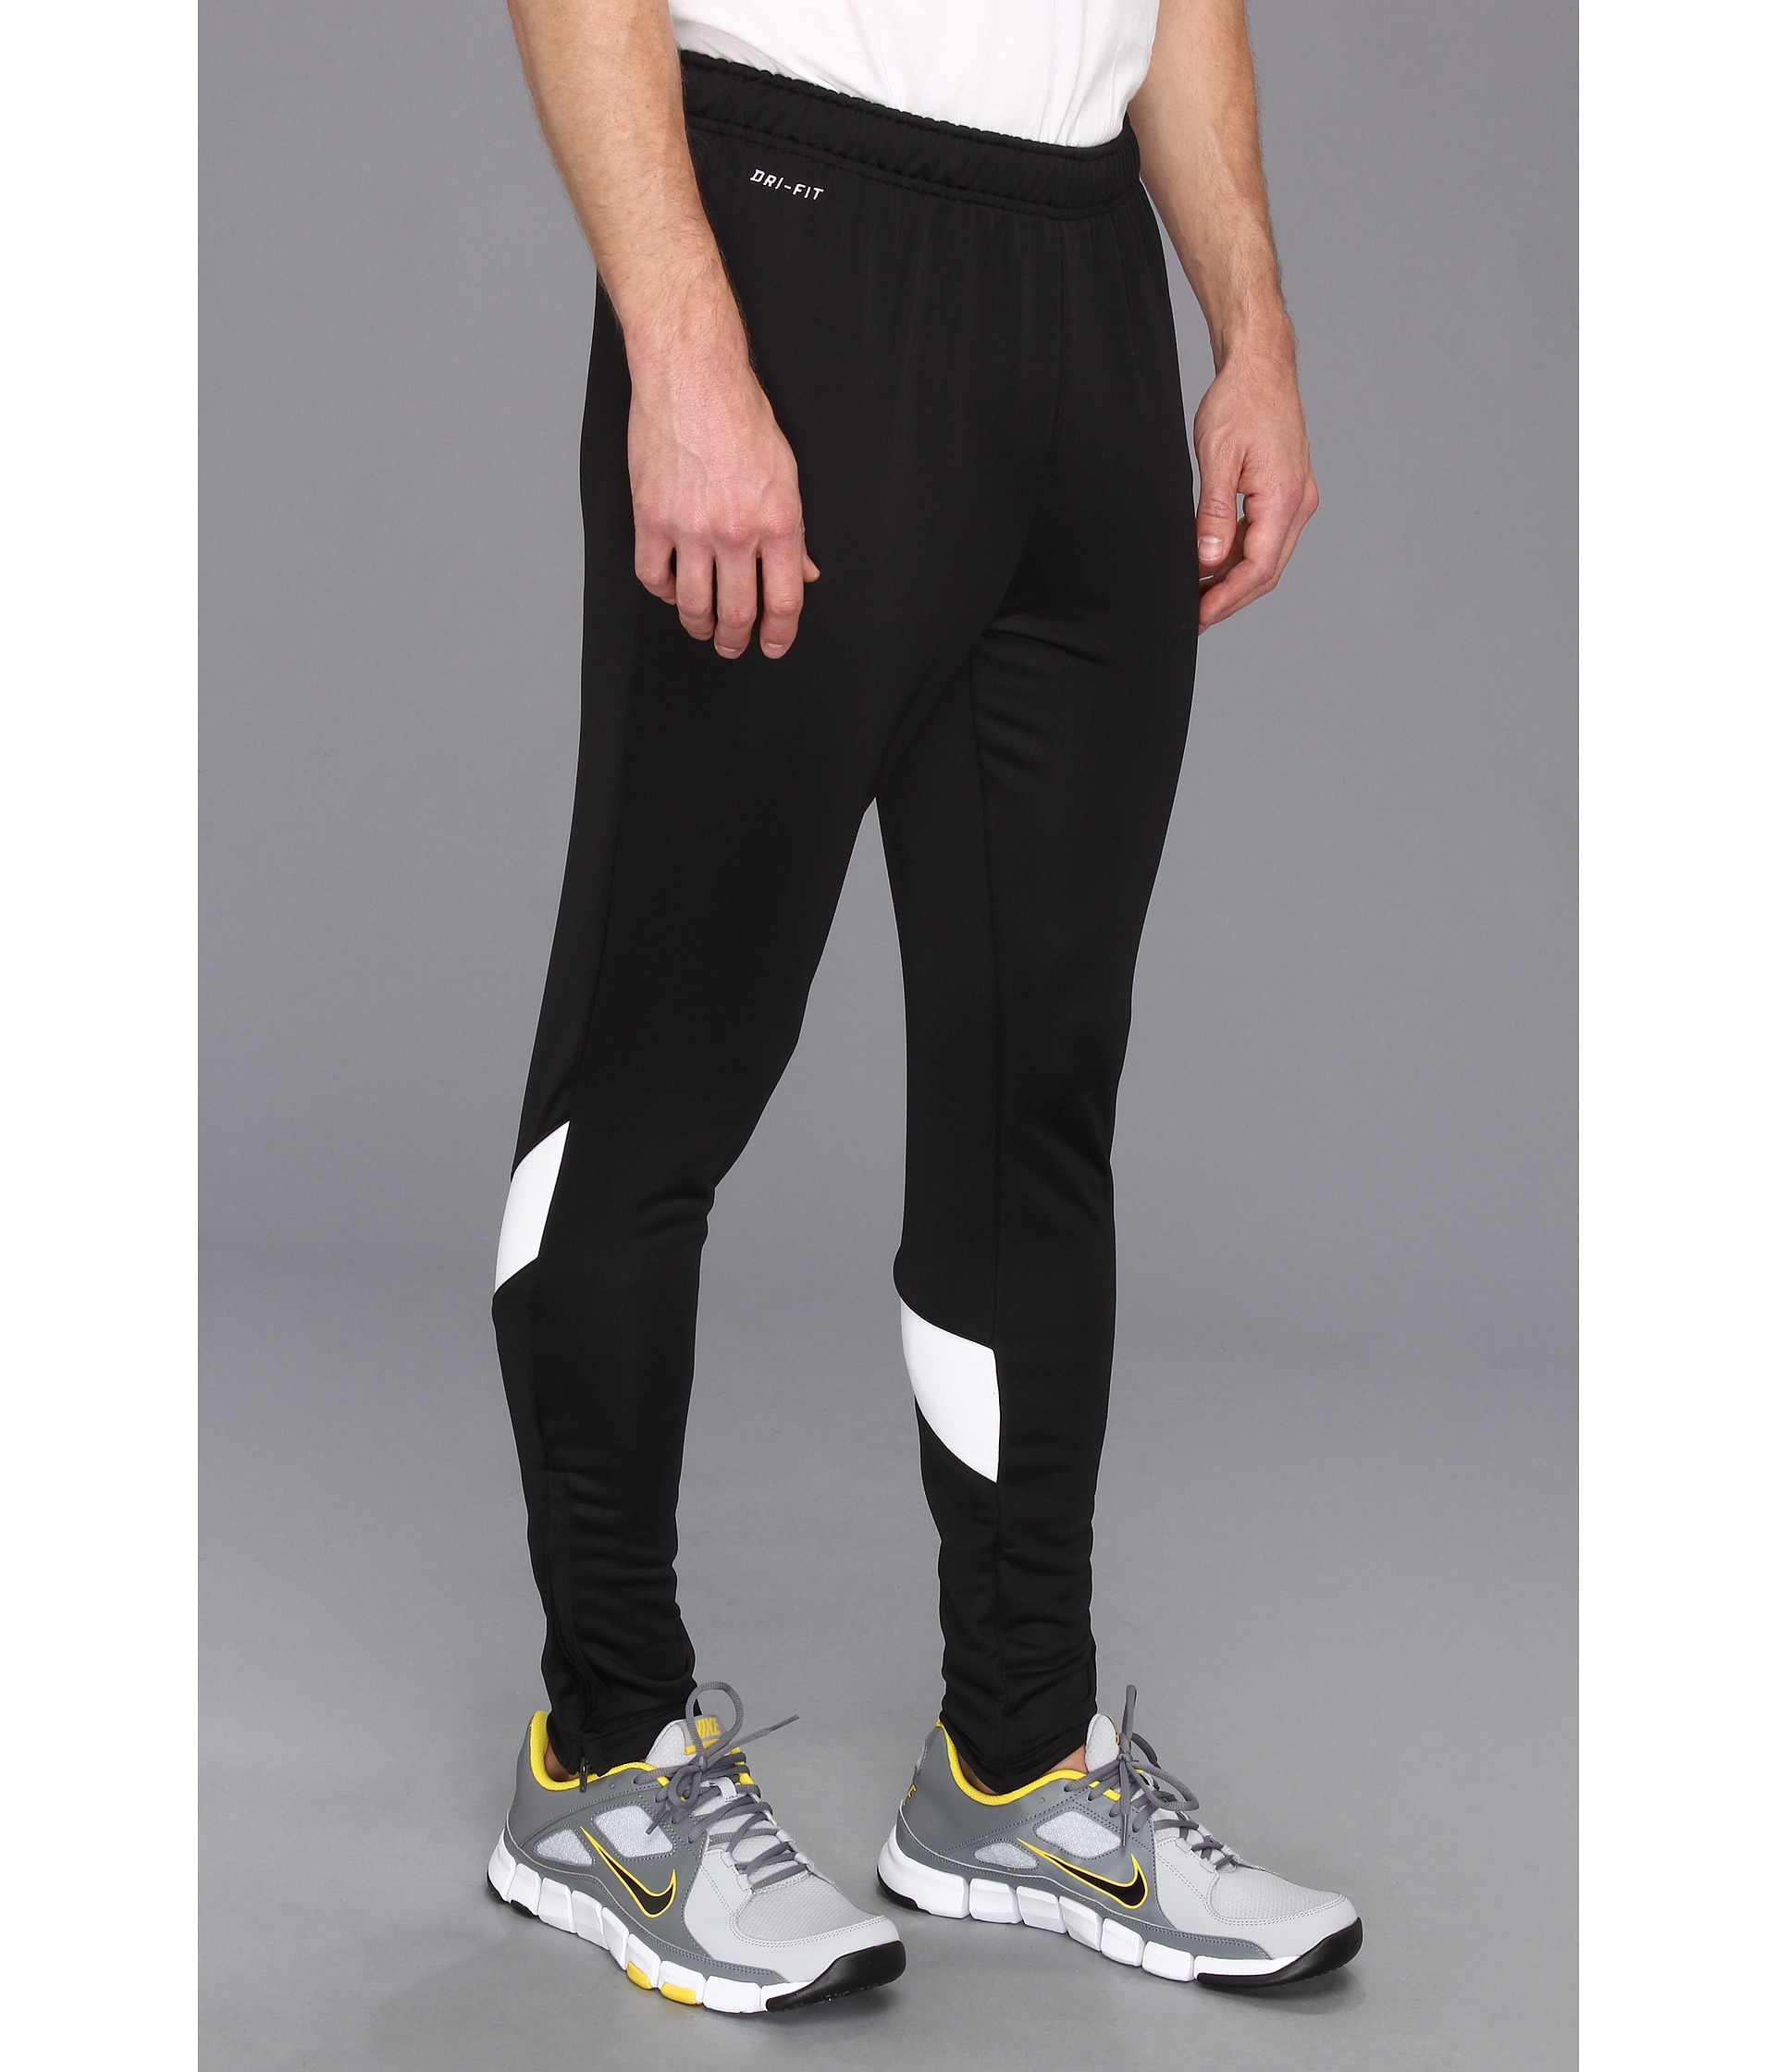 68a2c67a34 Nike Academy Tech Knit Pant, Clothing, Nike on PopScreen